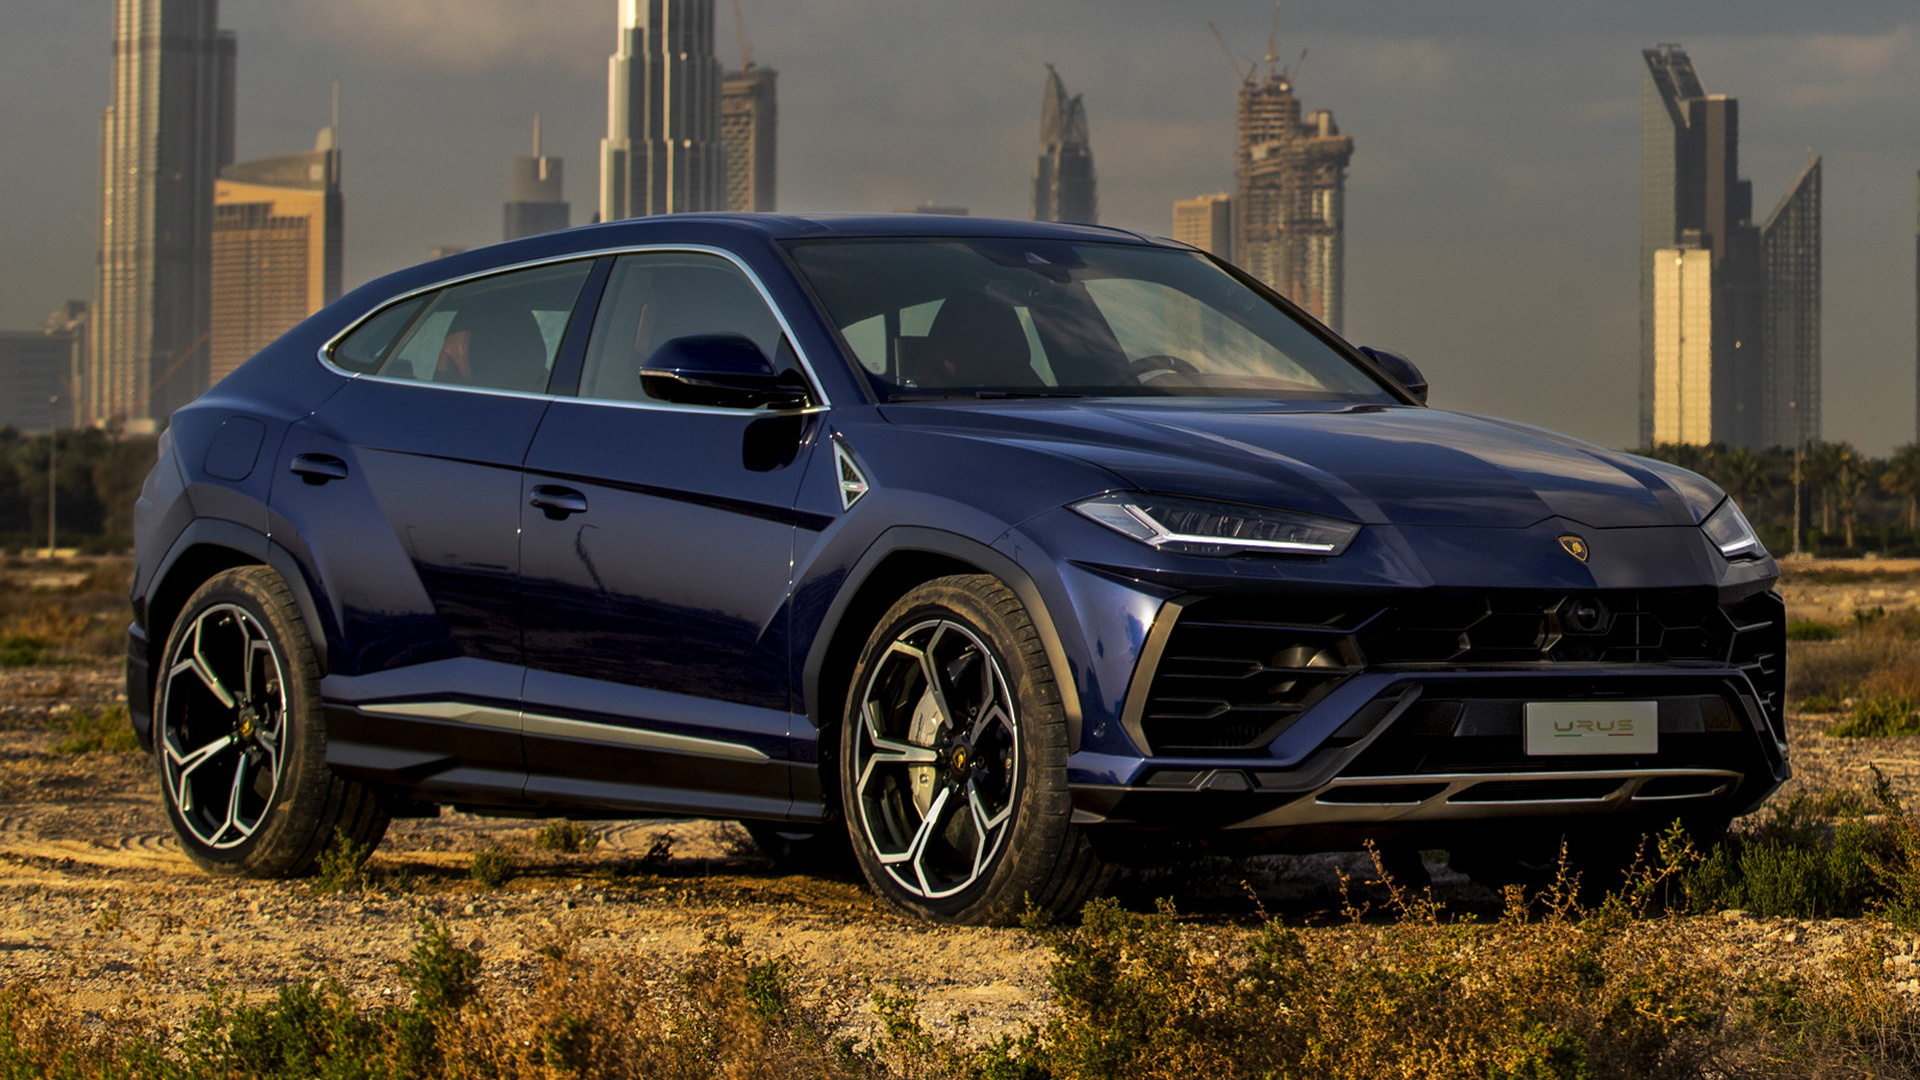 Lamborghini Urus Off Road Package 2018 Wallpapers And Hd Images